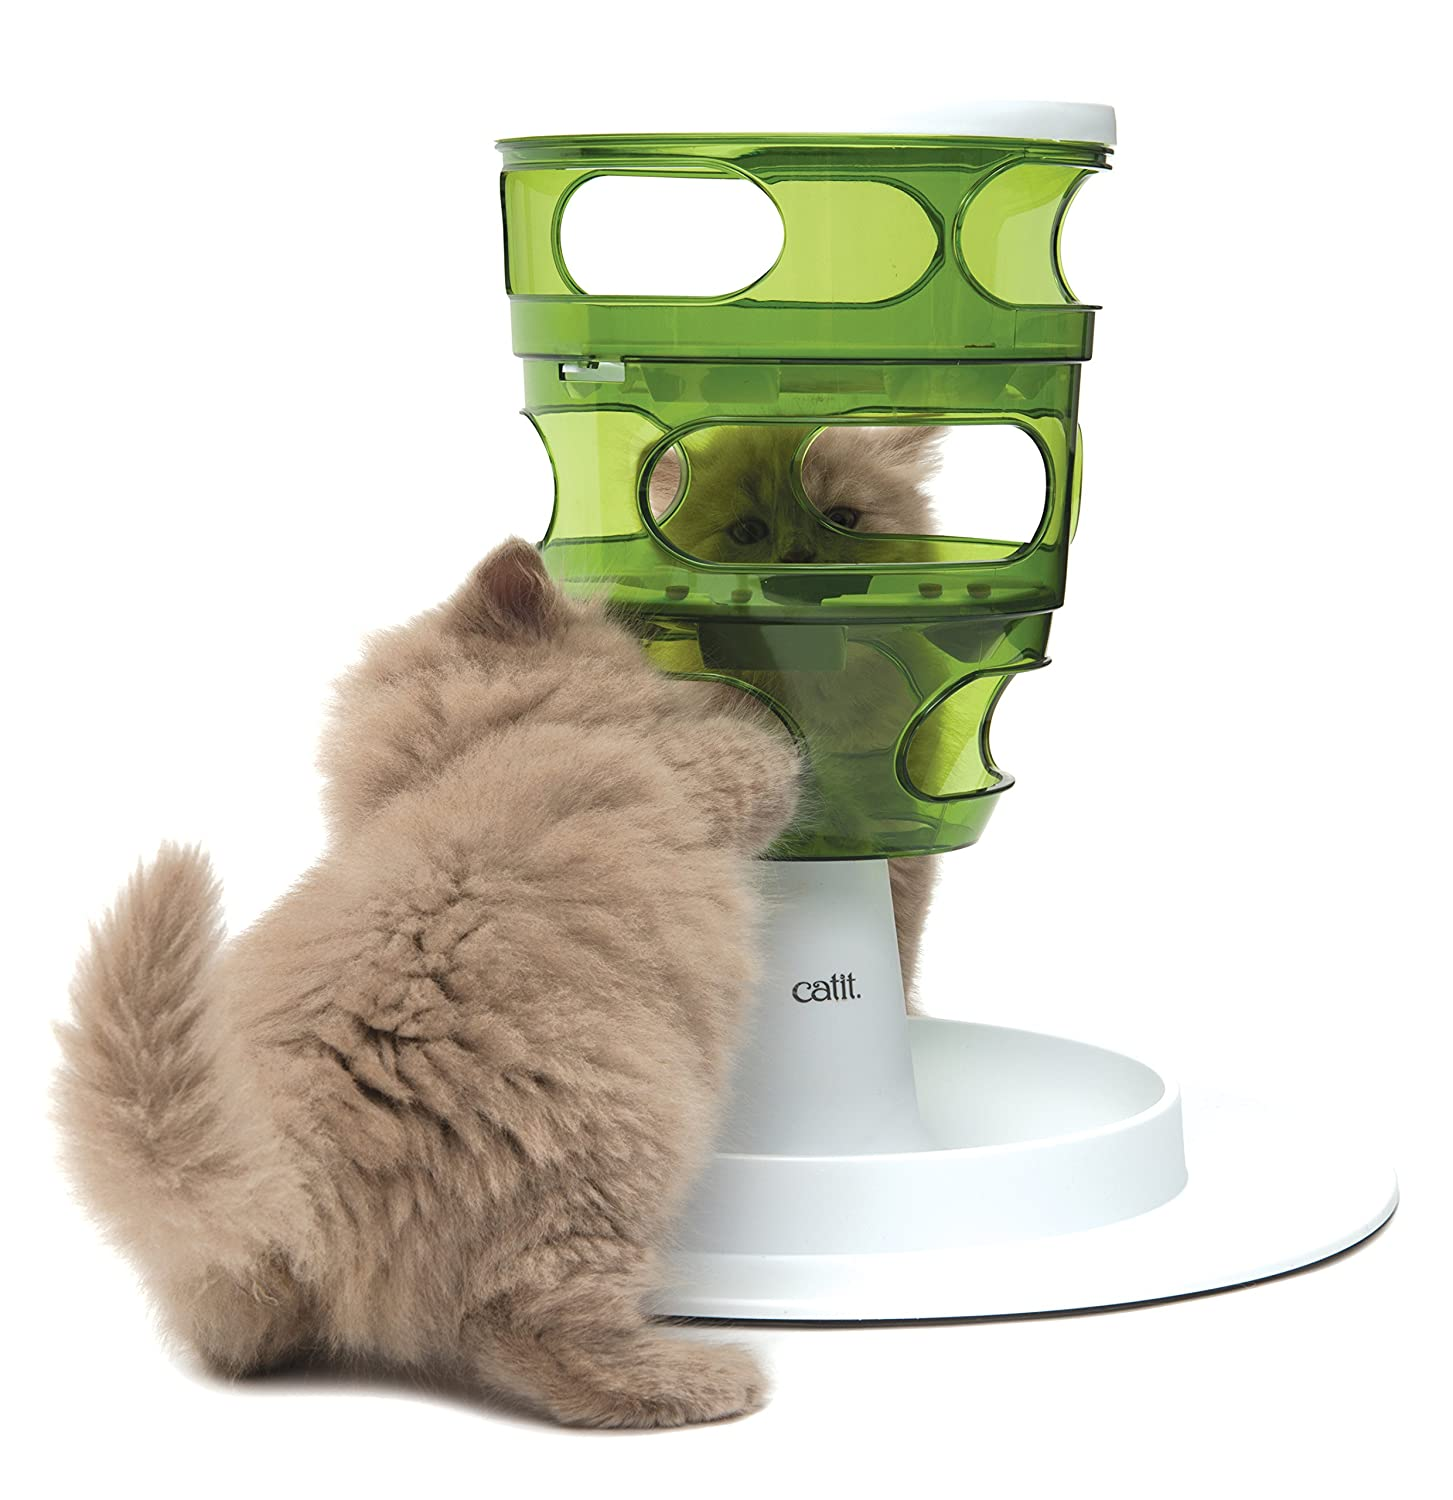 Amazoncom Catit Senses Food Tree Outdoor And Patio - 21 cats losing fight against technology